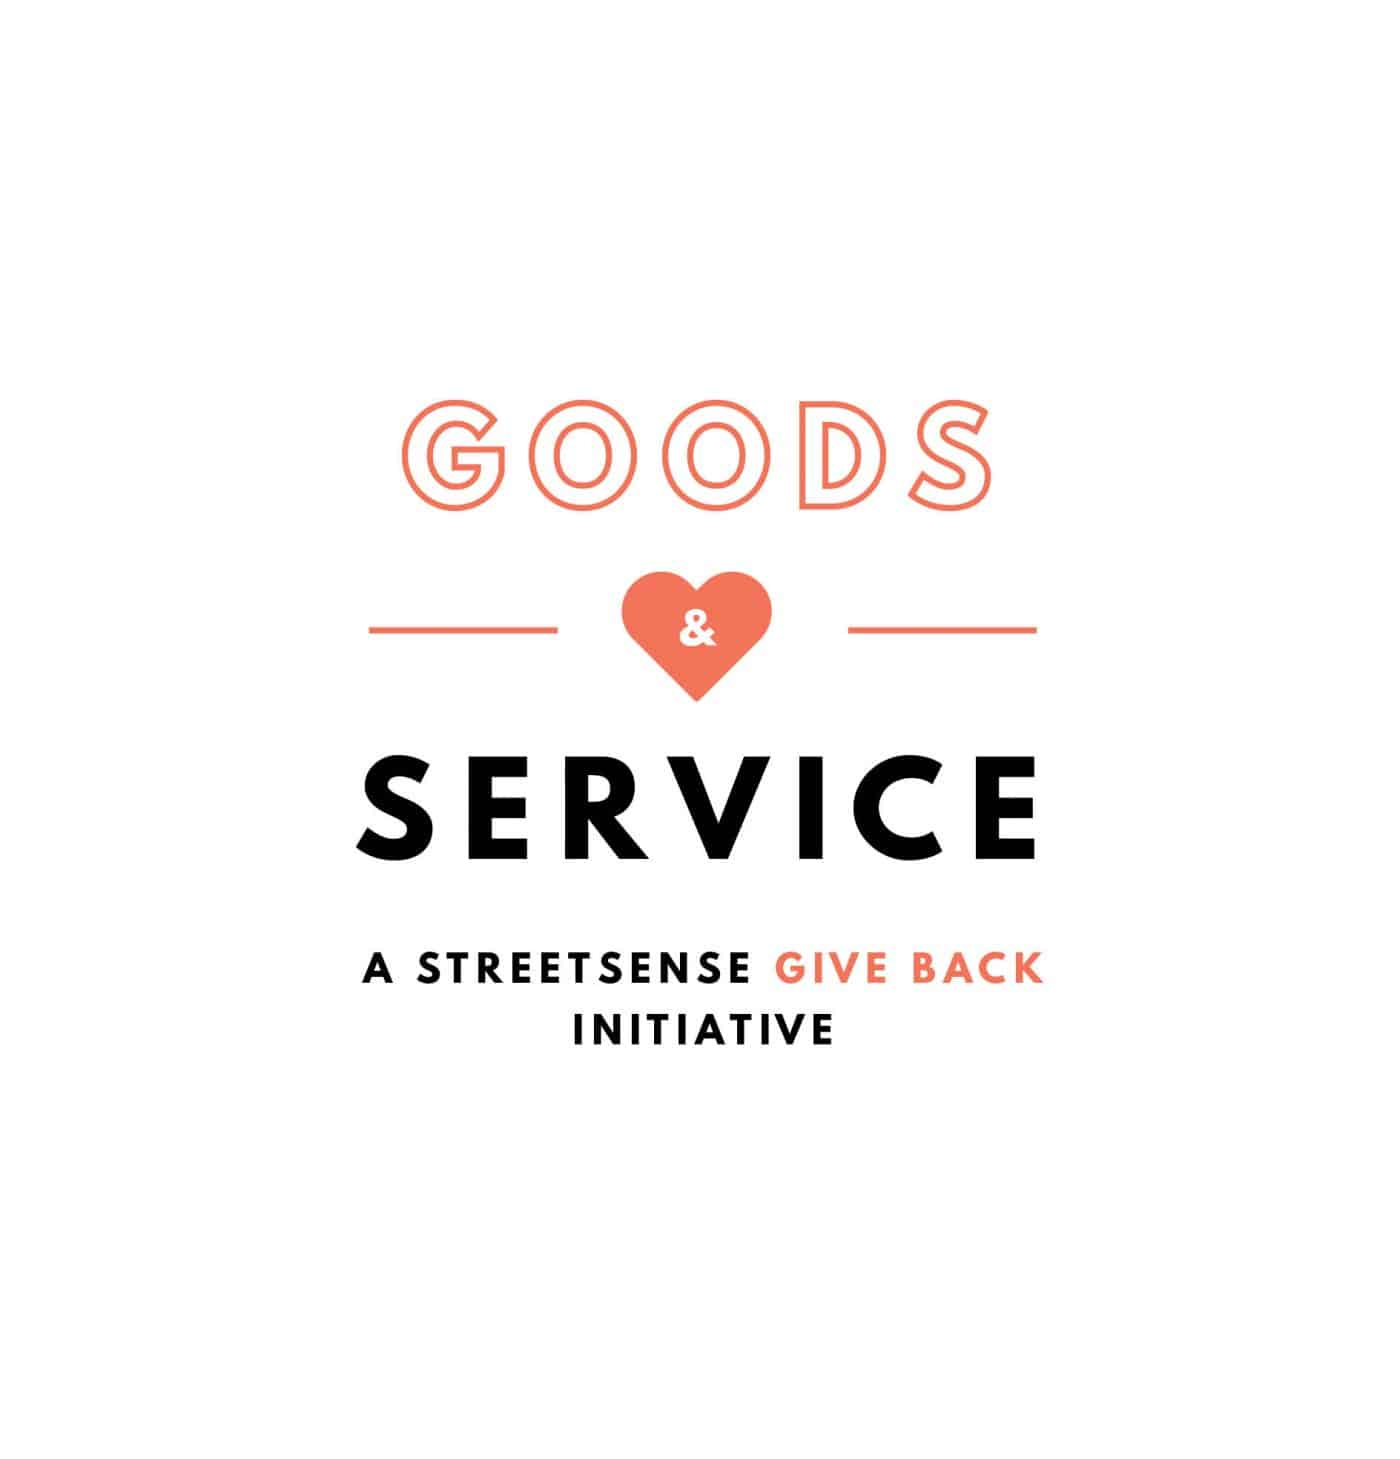 Recapping Goods & Service